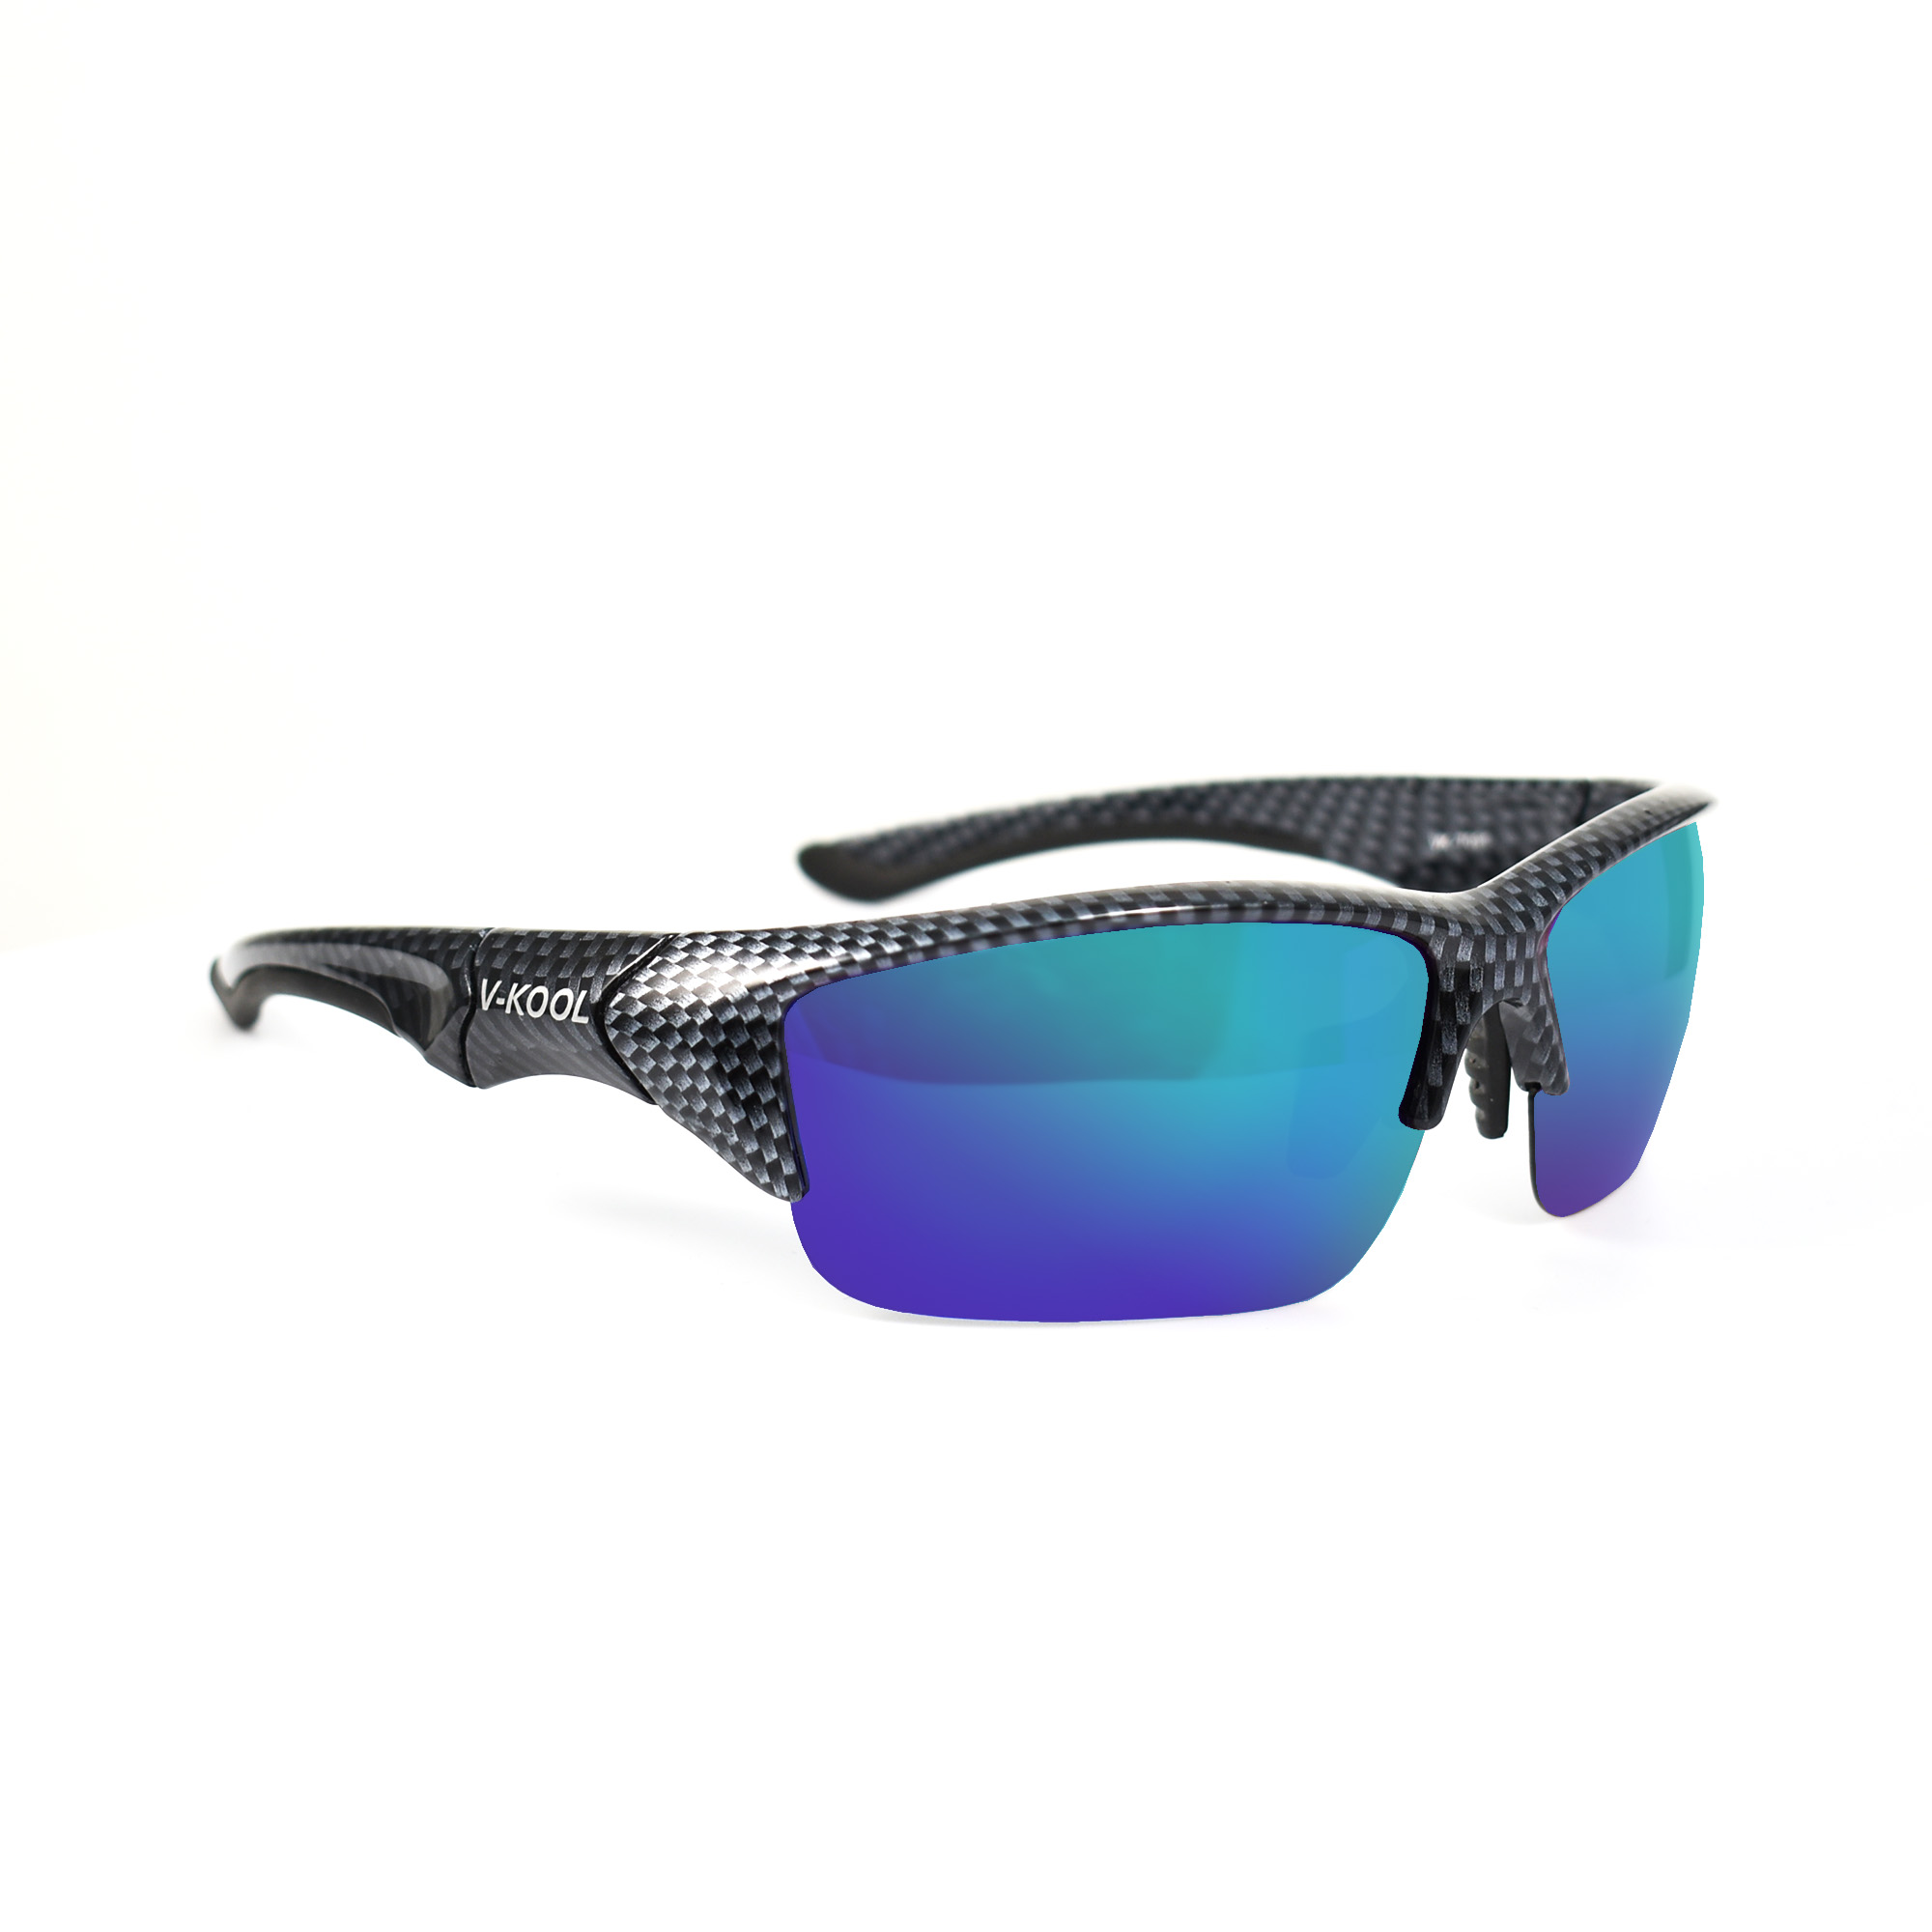 Varek Grey Sports Polarized Sunglasses